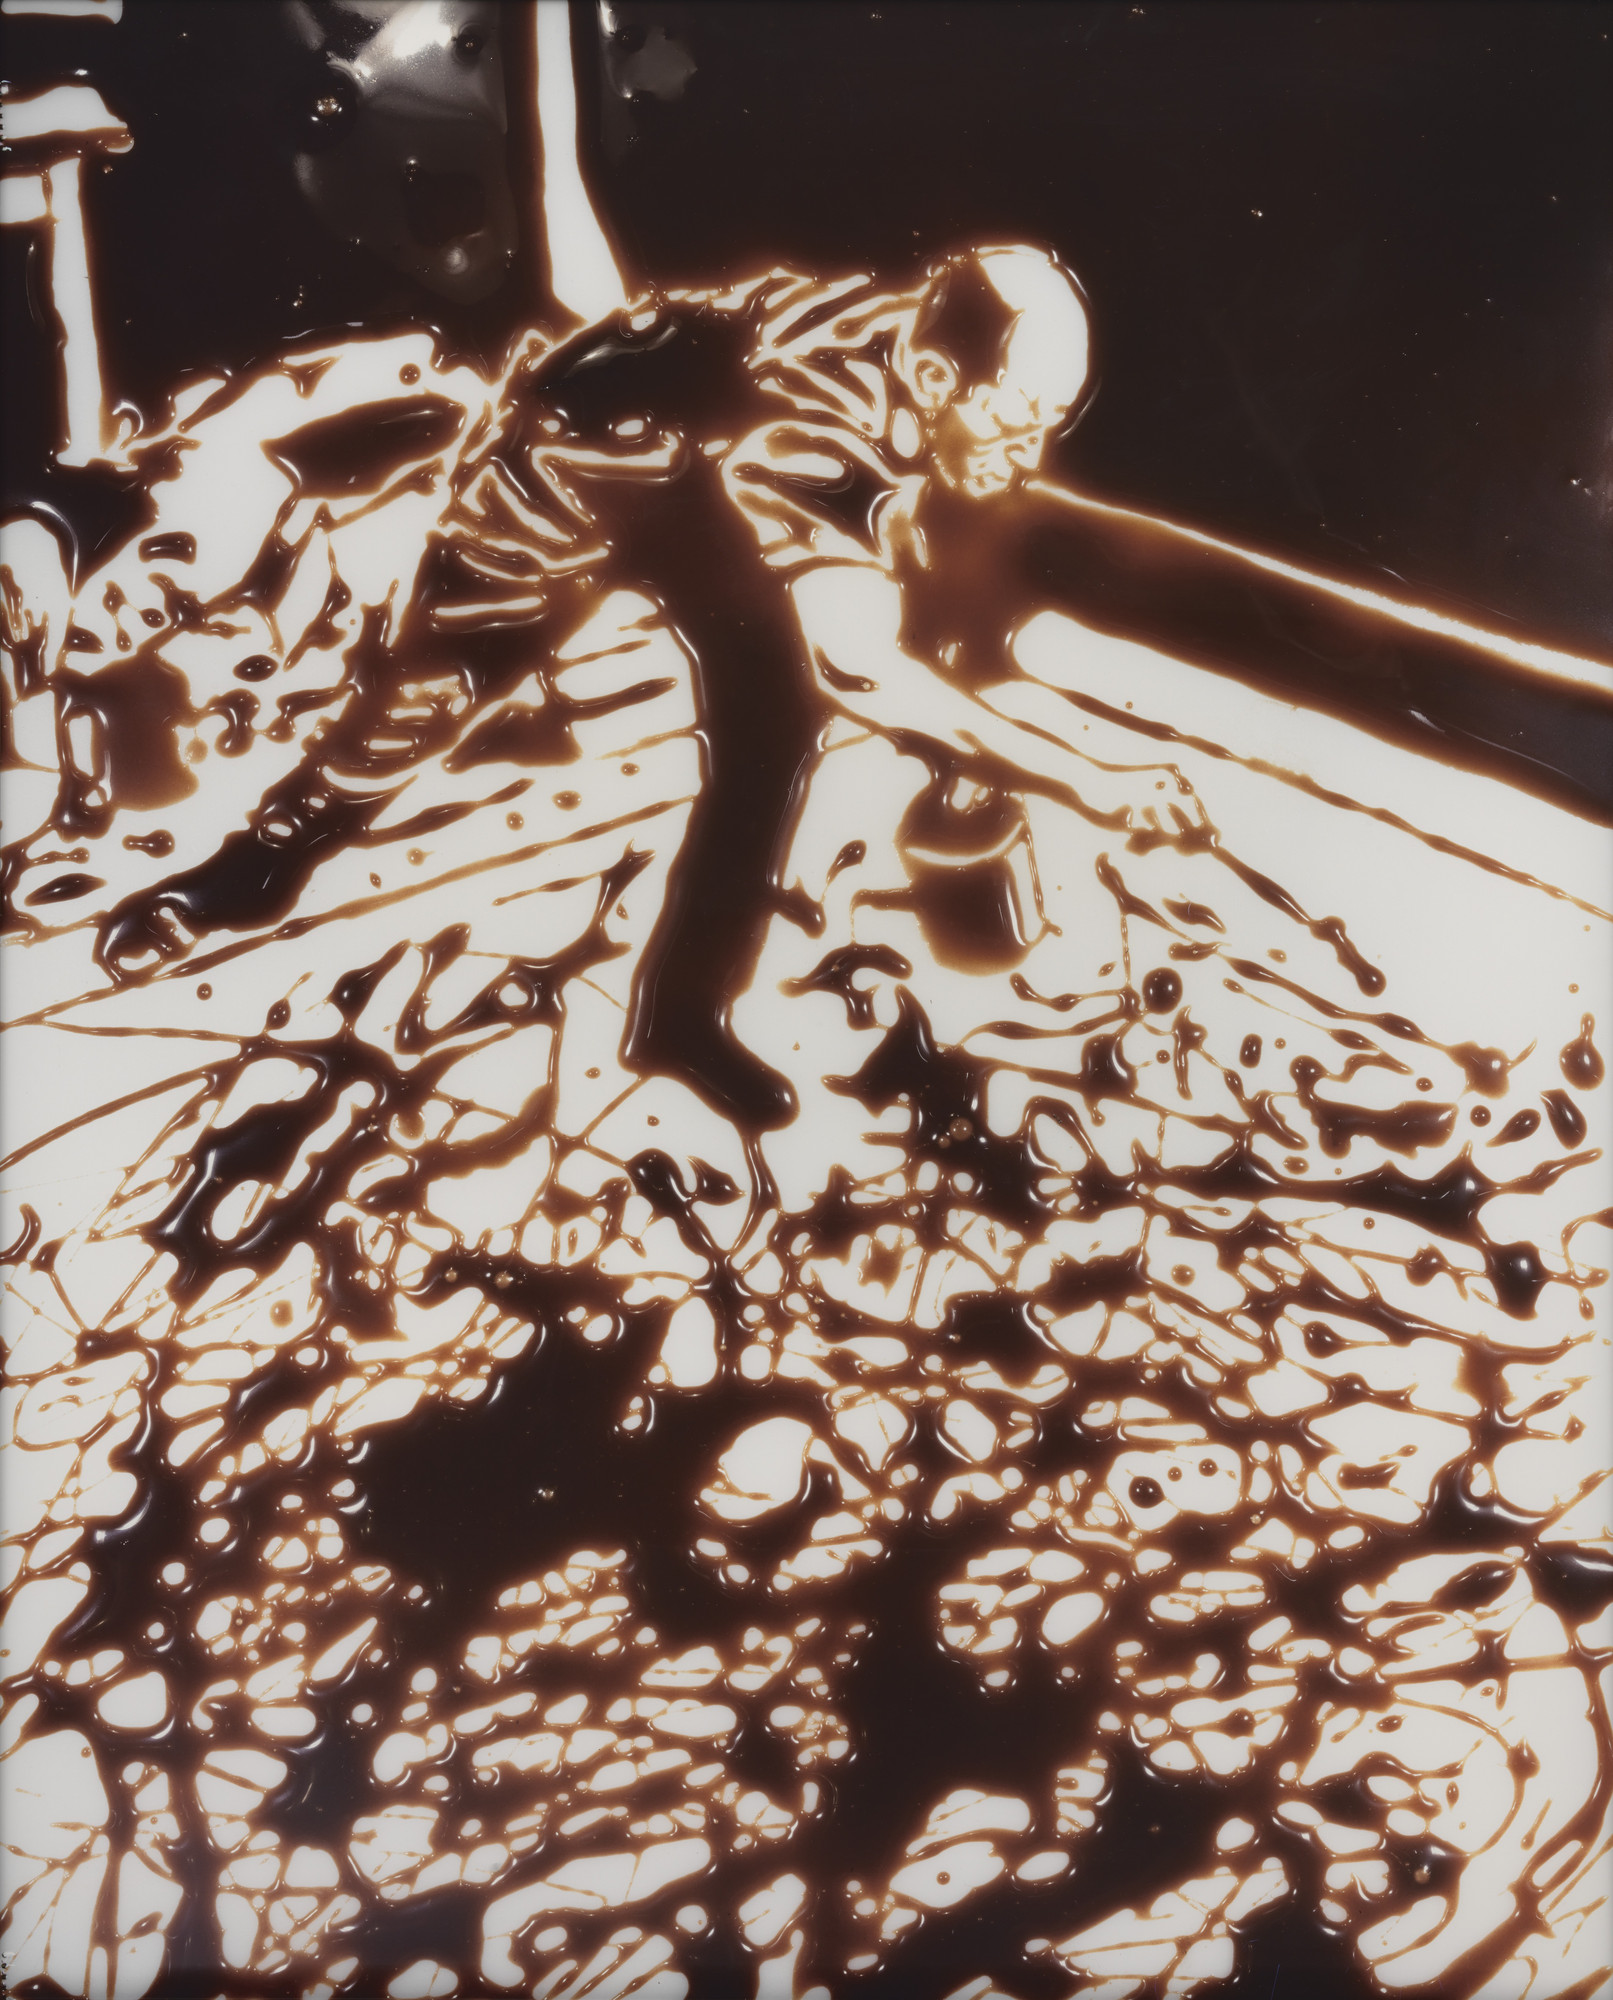 Vik Muniz. Action Photo, After Hans Namuth. 1997